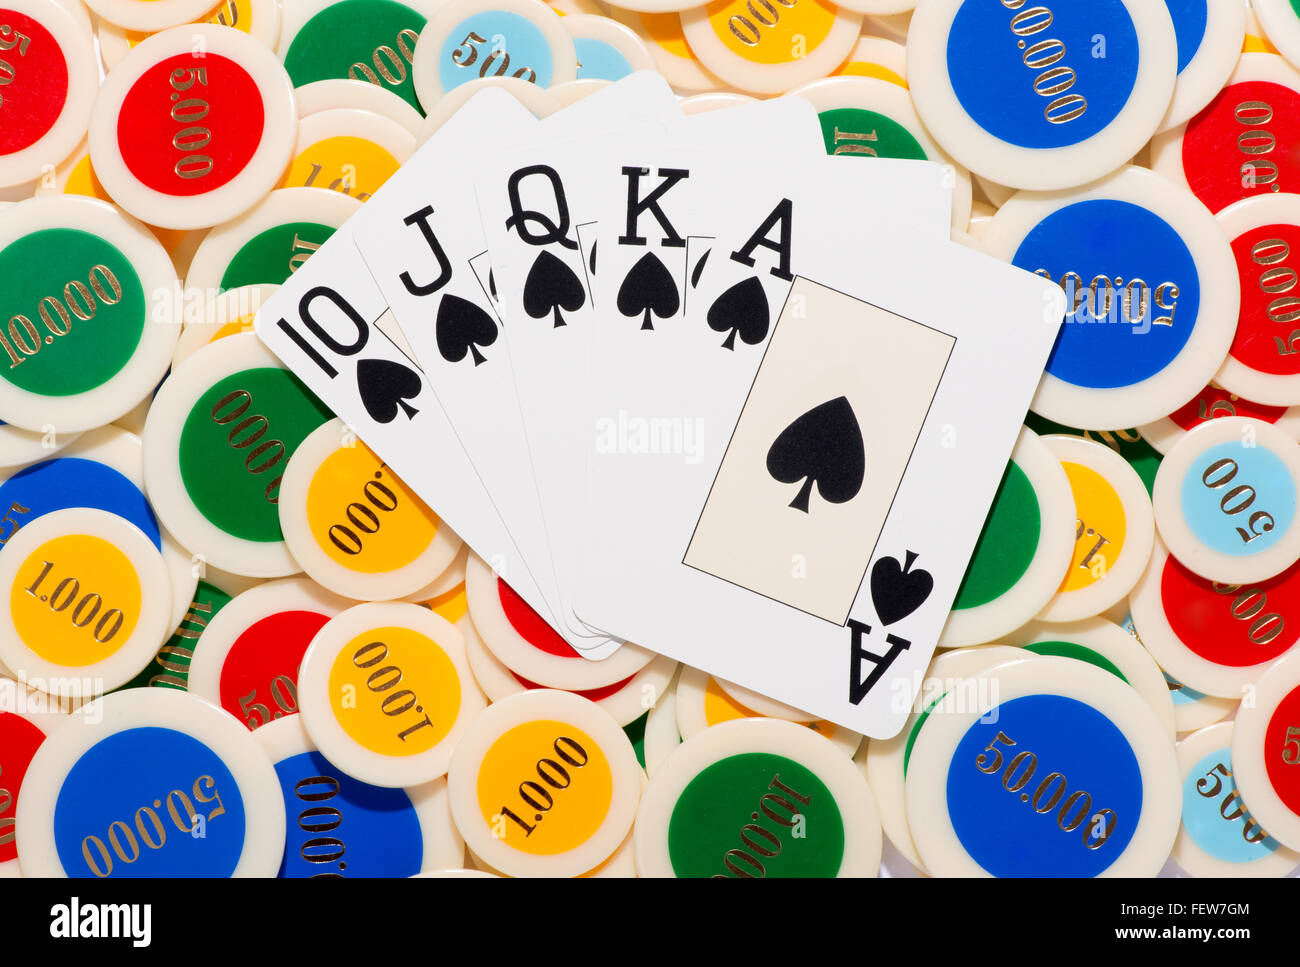 Poker hand with a straight flush in spades fanned over a colorful background of poker chips - Stock Image